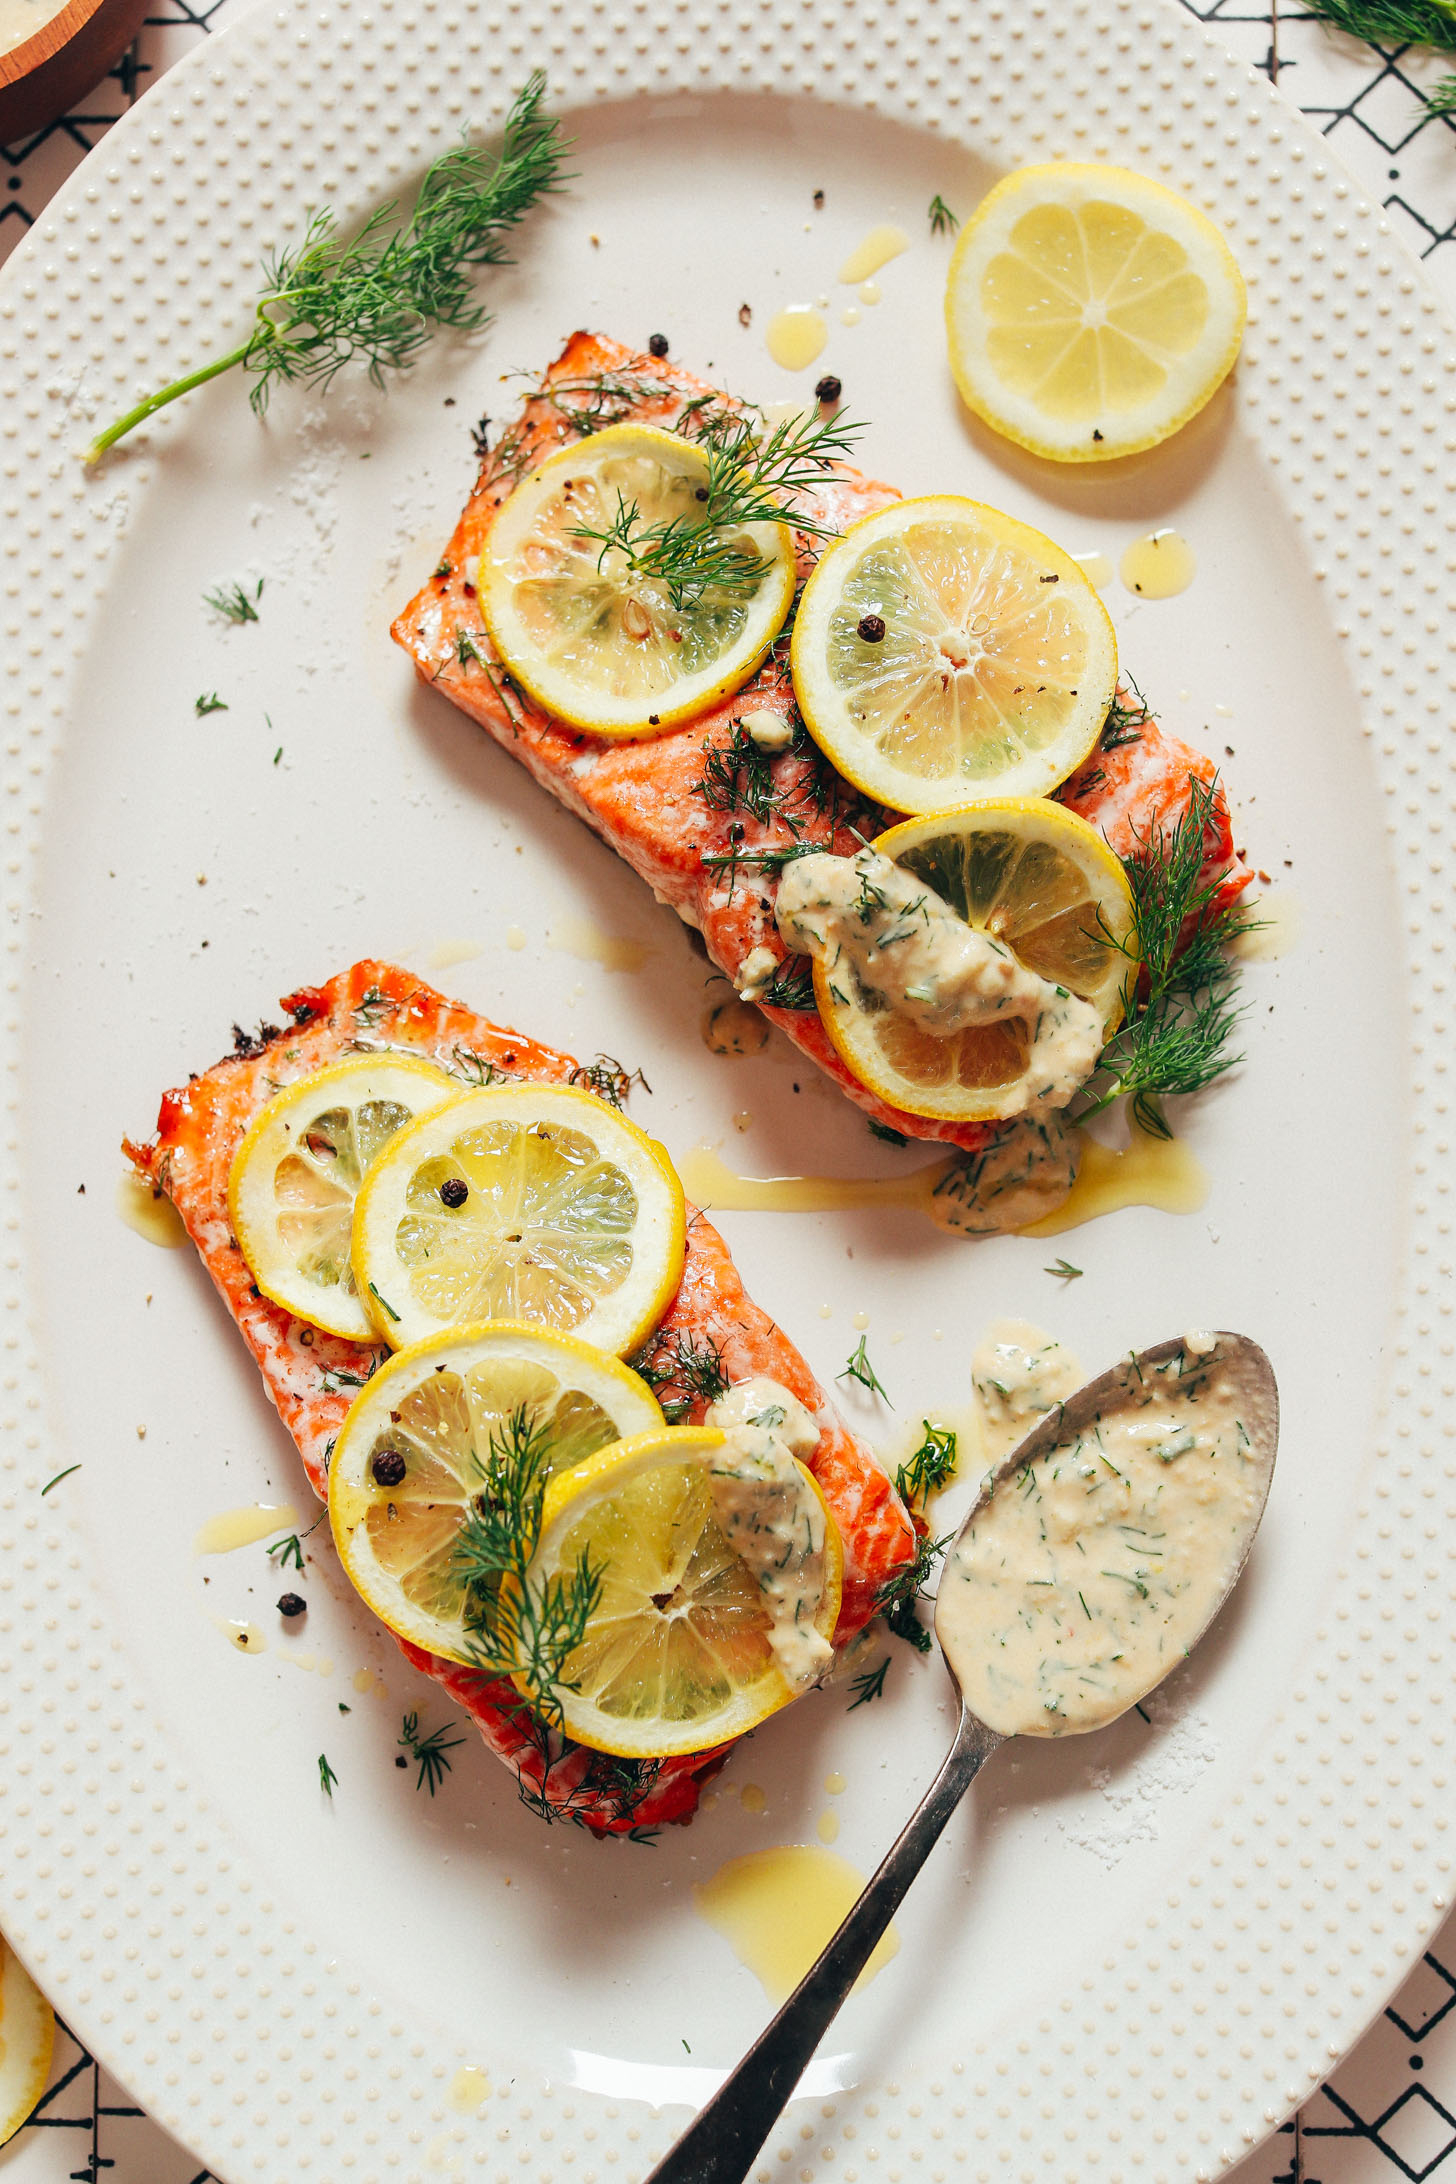 Platter with Dill & Lemon Salmon beside a spoonful of Quick Garlic Sauce